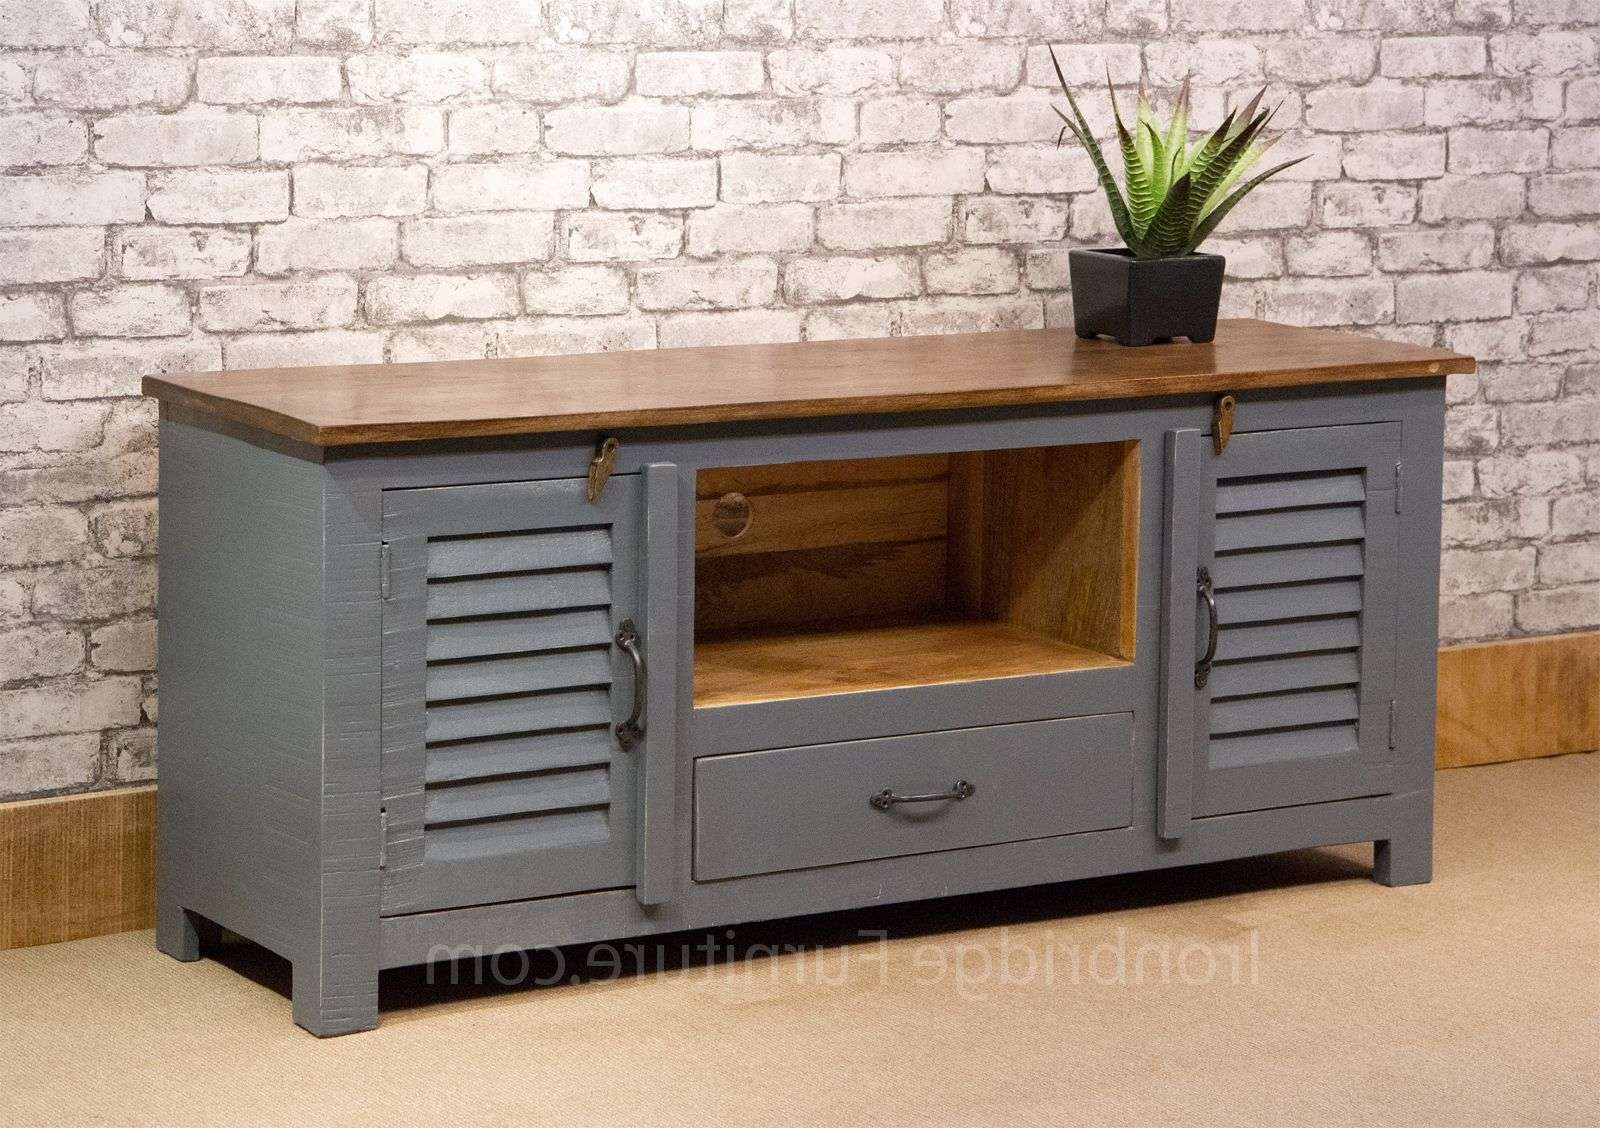 Si 518 Vintage Style Painted Long Tv Cabinet – Dusky Grey Inside Vintage Style Tv Cabinets (View 20 of 20)